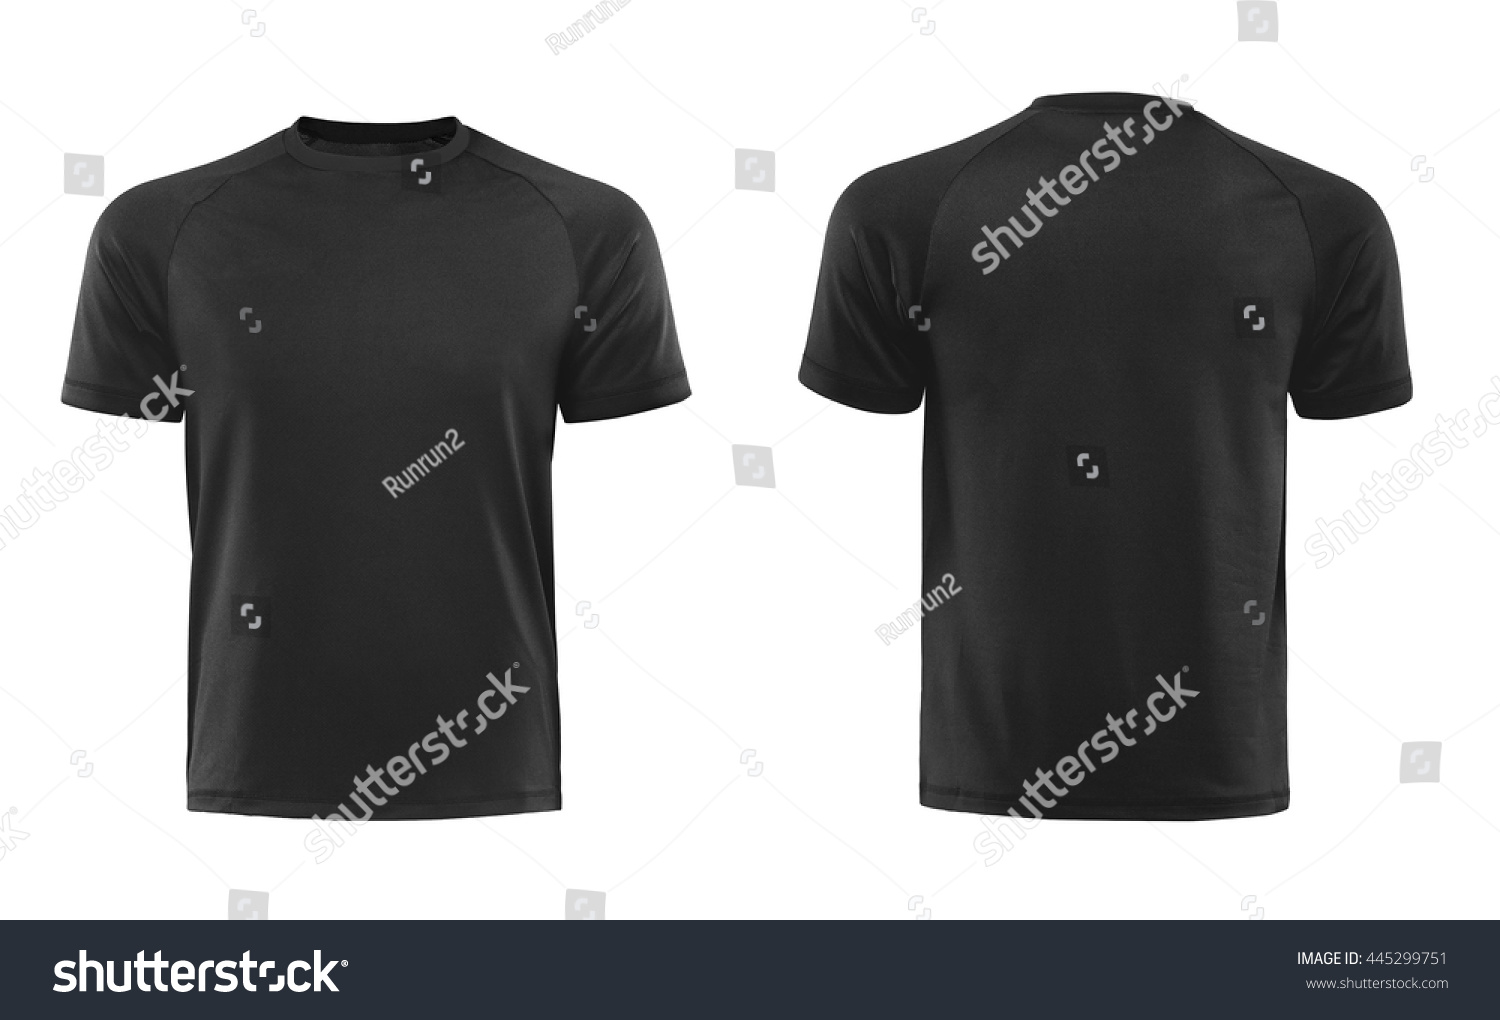 Black t shirt front - Black T Shirts Front And Back Used As Design Template Isolated On White